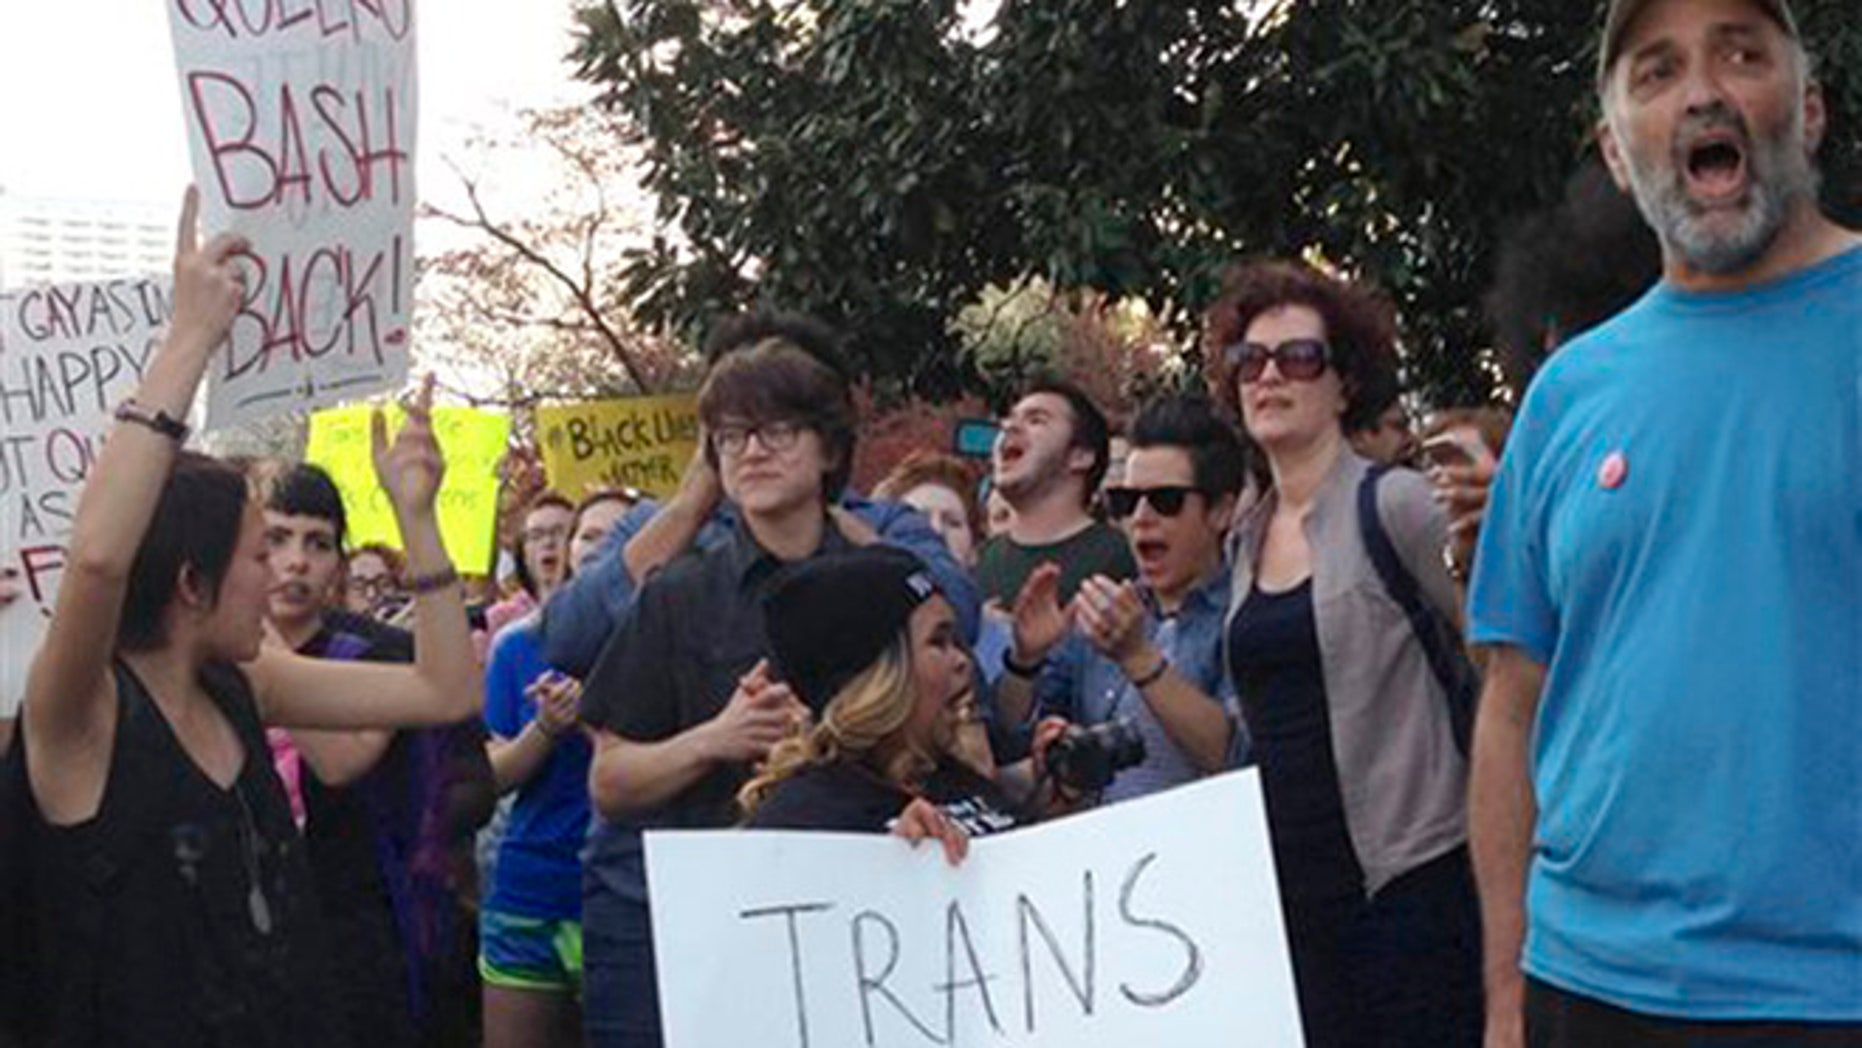 March 24, 2016: People protest outside the North Carolina Executive Mansion in Raleigh.